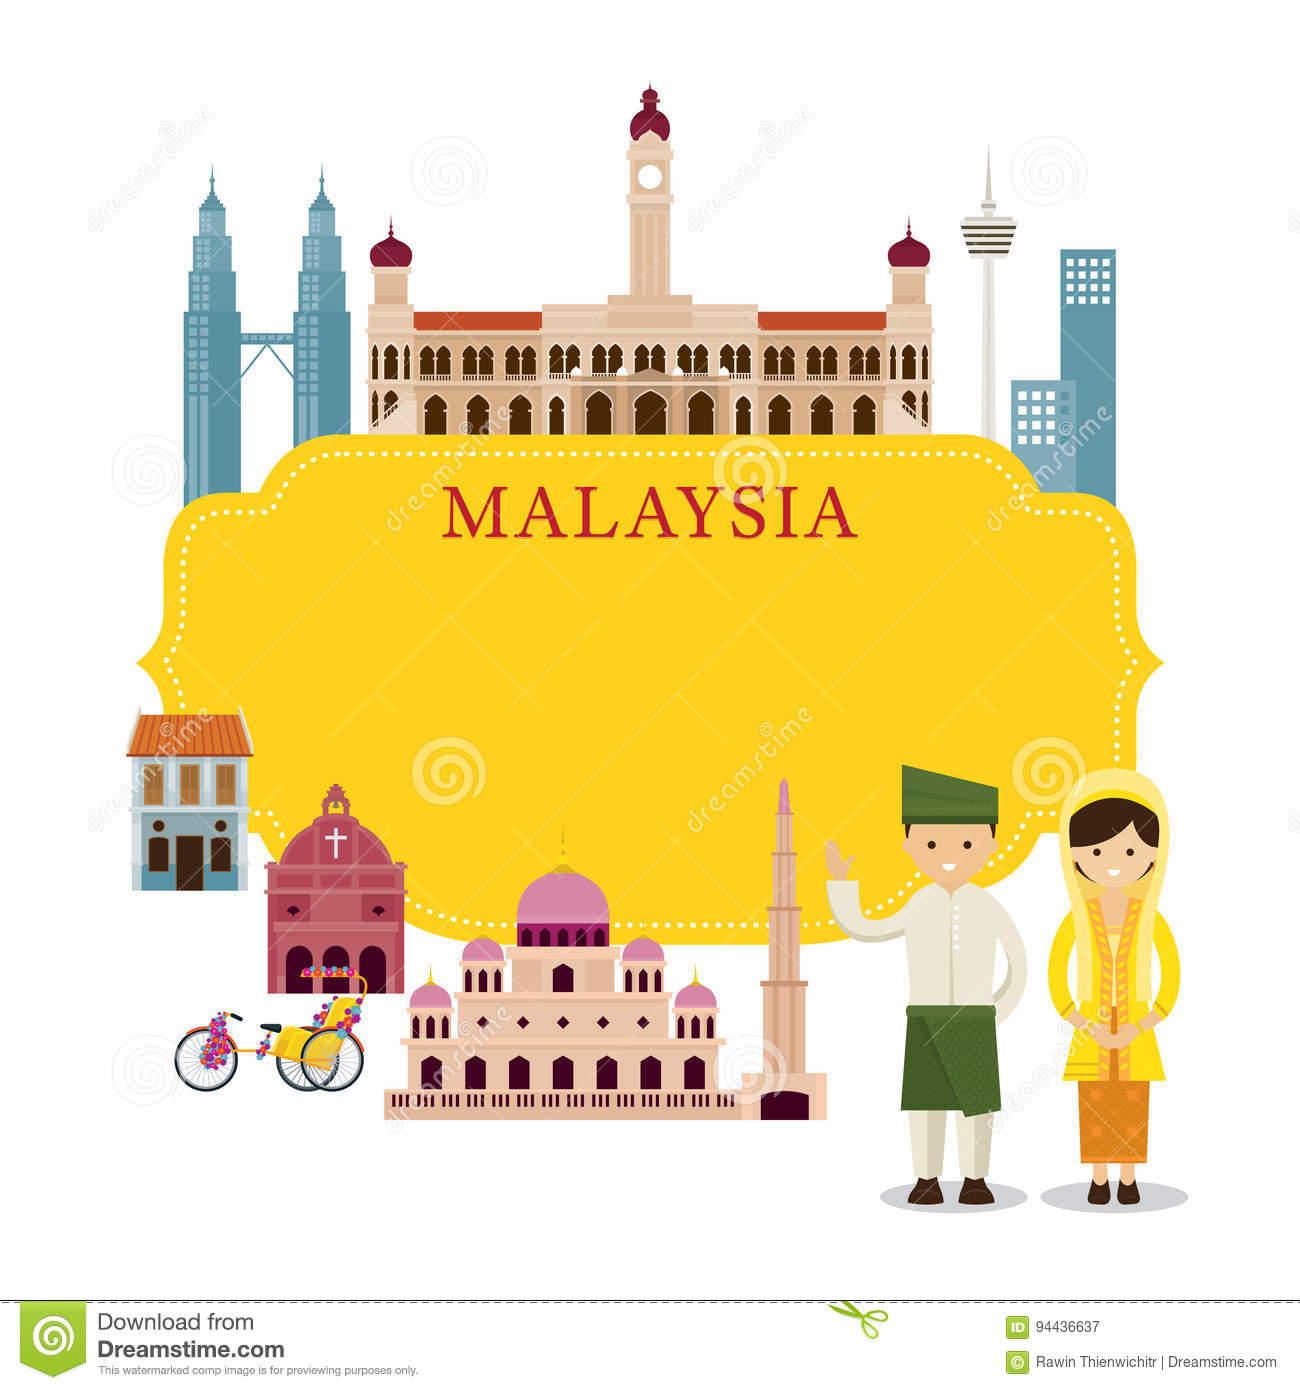 Malaysian People: Trishaw Cartoons, Illustrations & Vector Stock Images